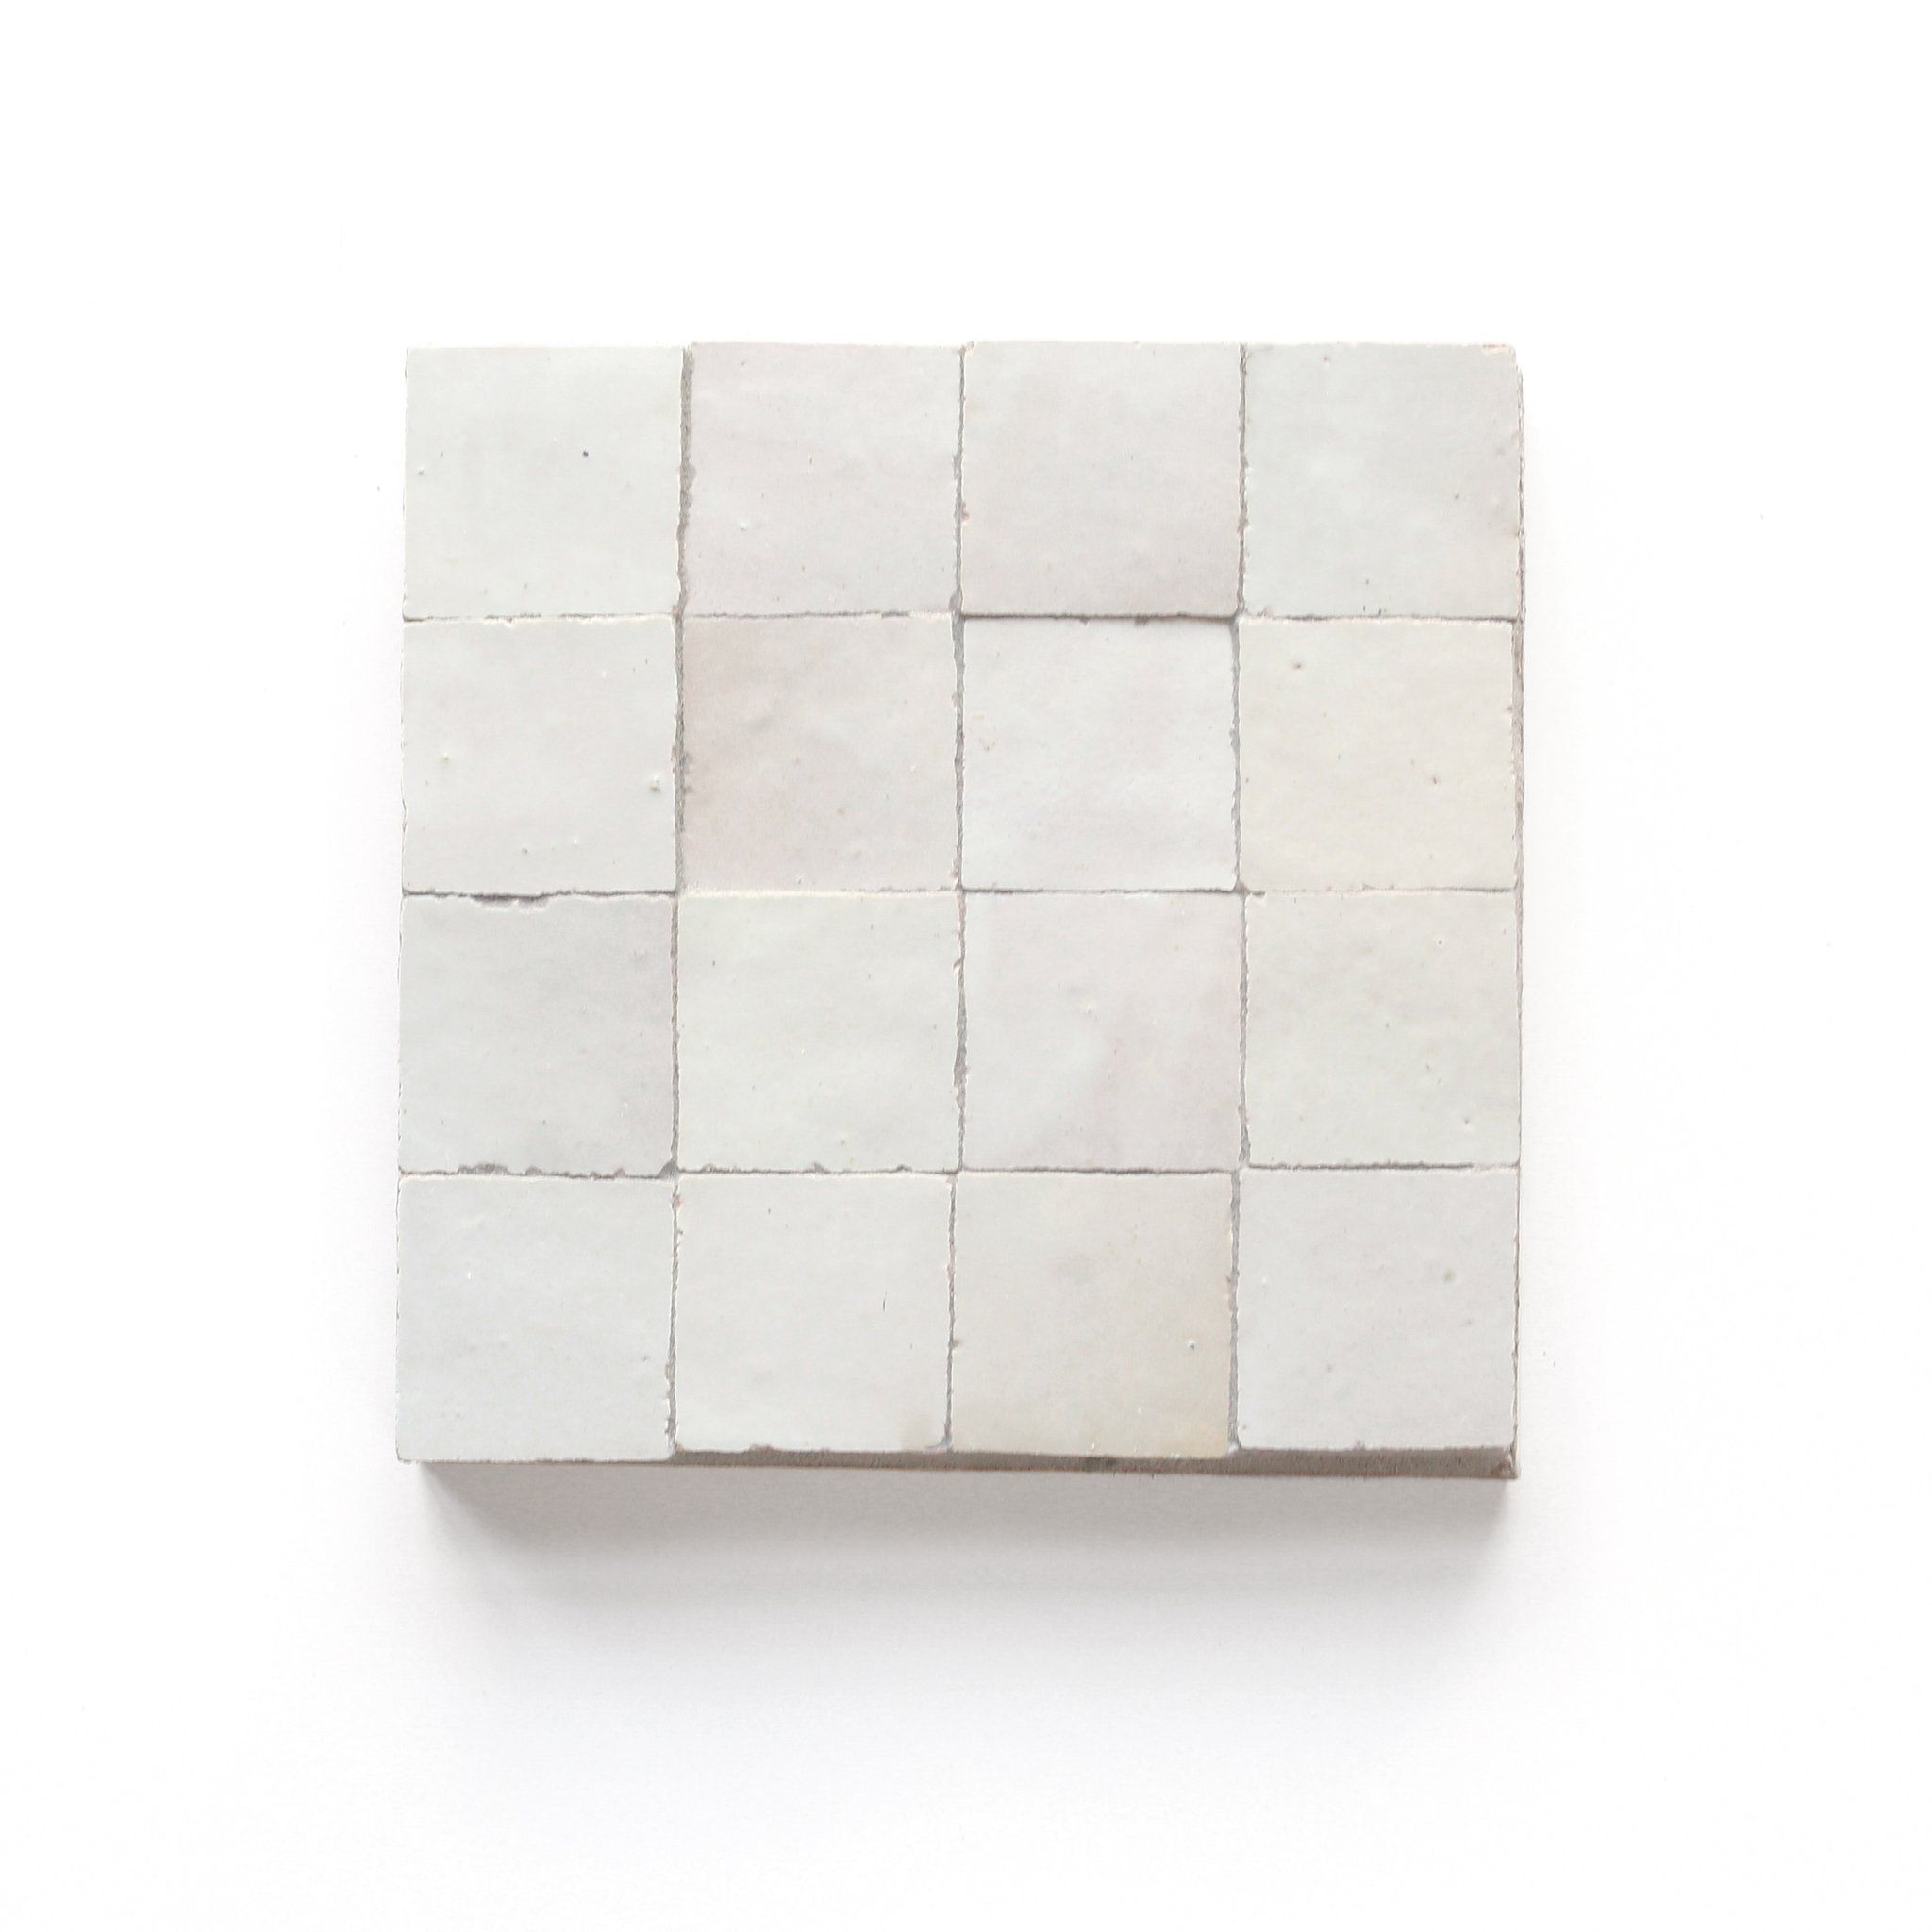 Weathered White Mounted Zellige 2 X2 X3 8 In 2020 Weathered White White Bathroom Tiles White Tiles